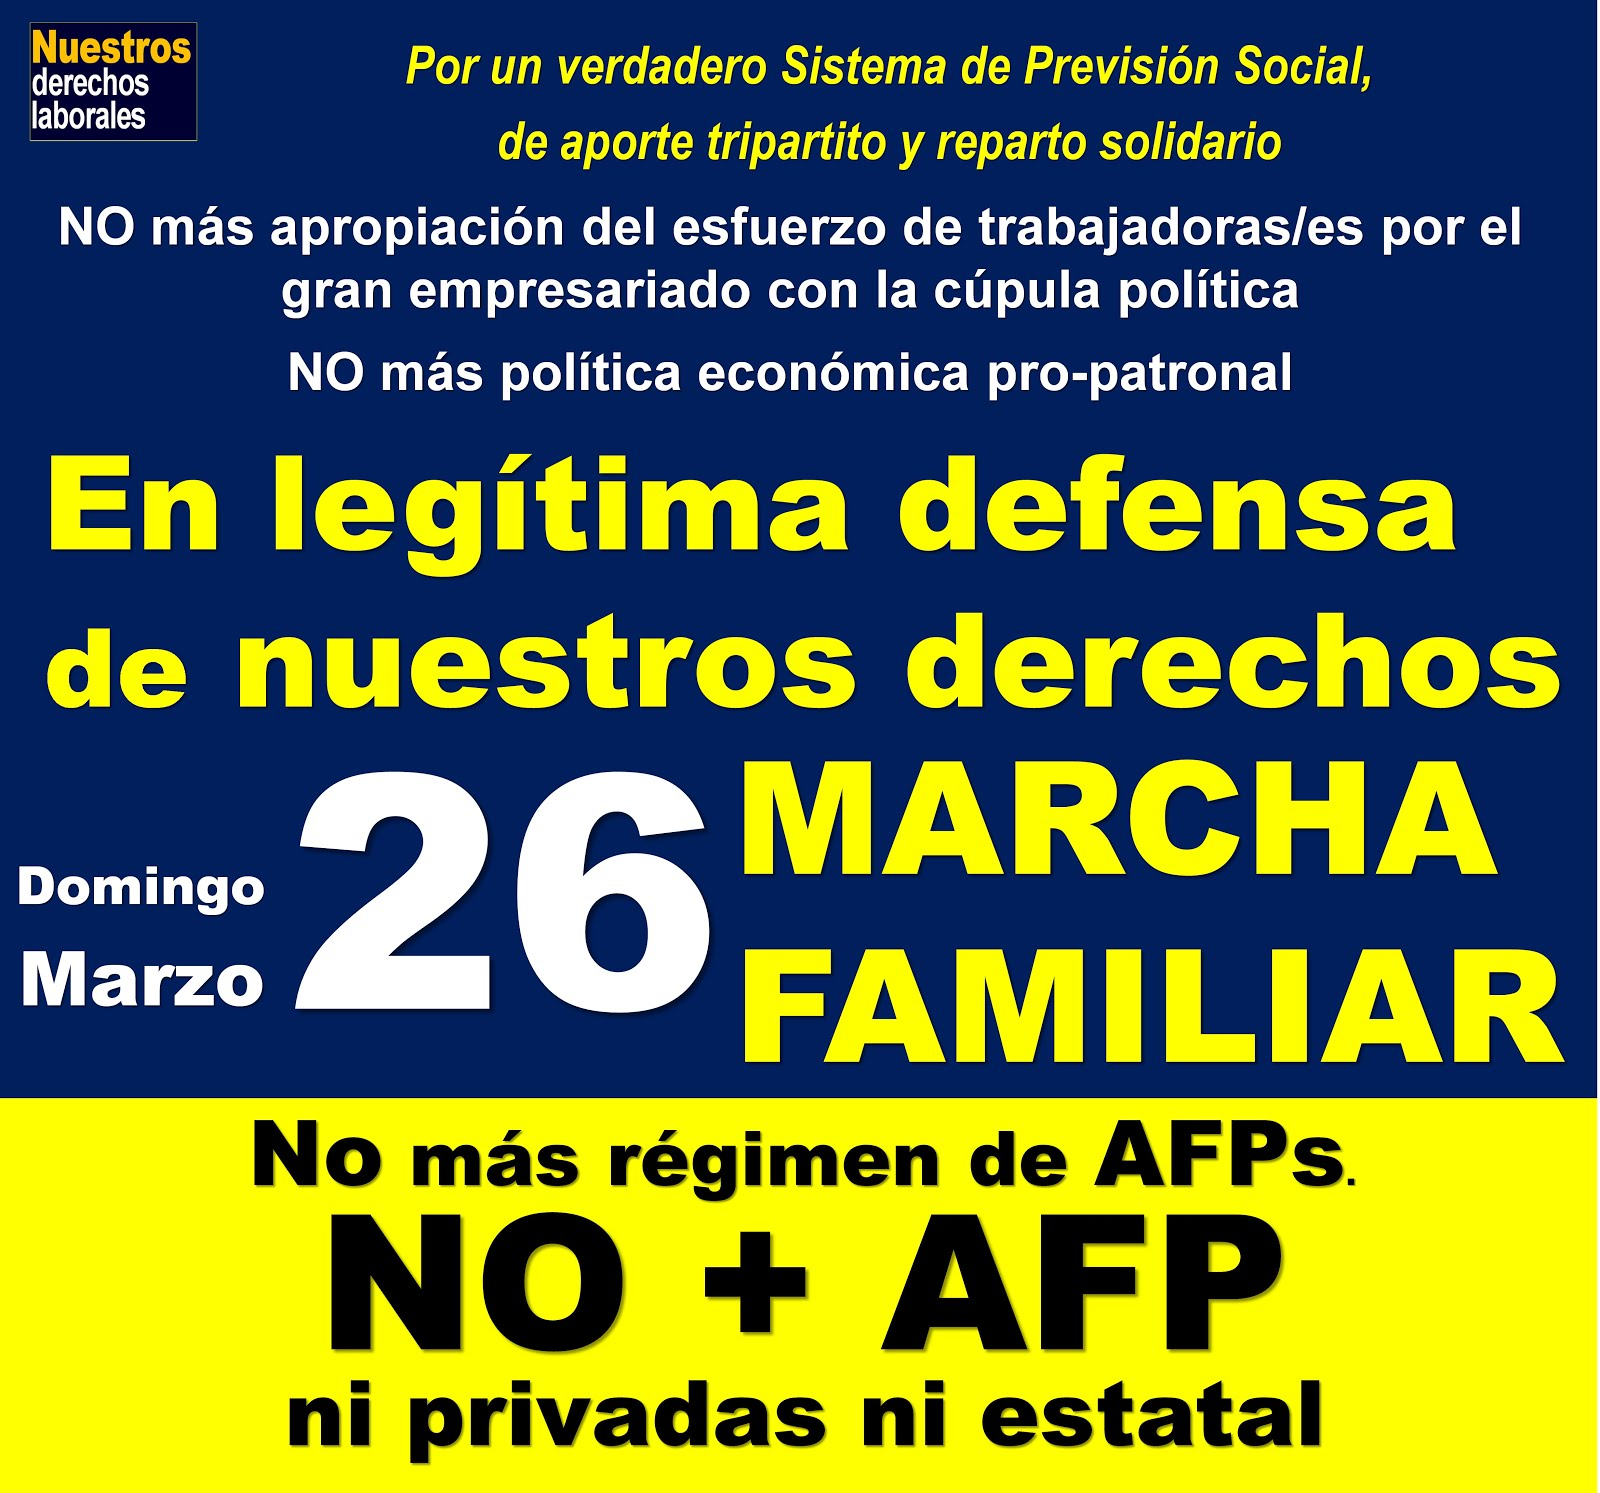 NO MÁS AFP. Ni privadas ni estatal.